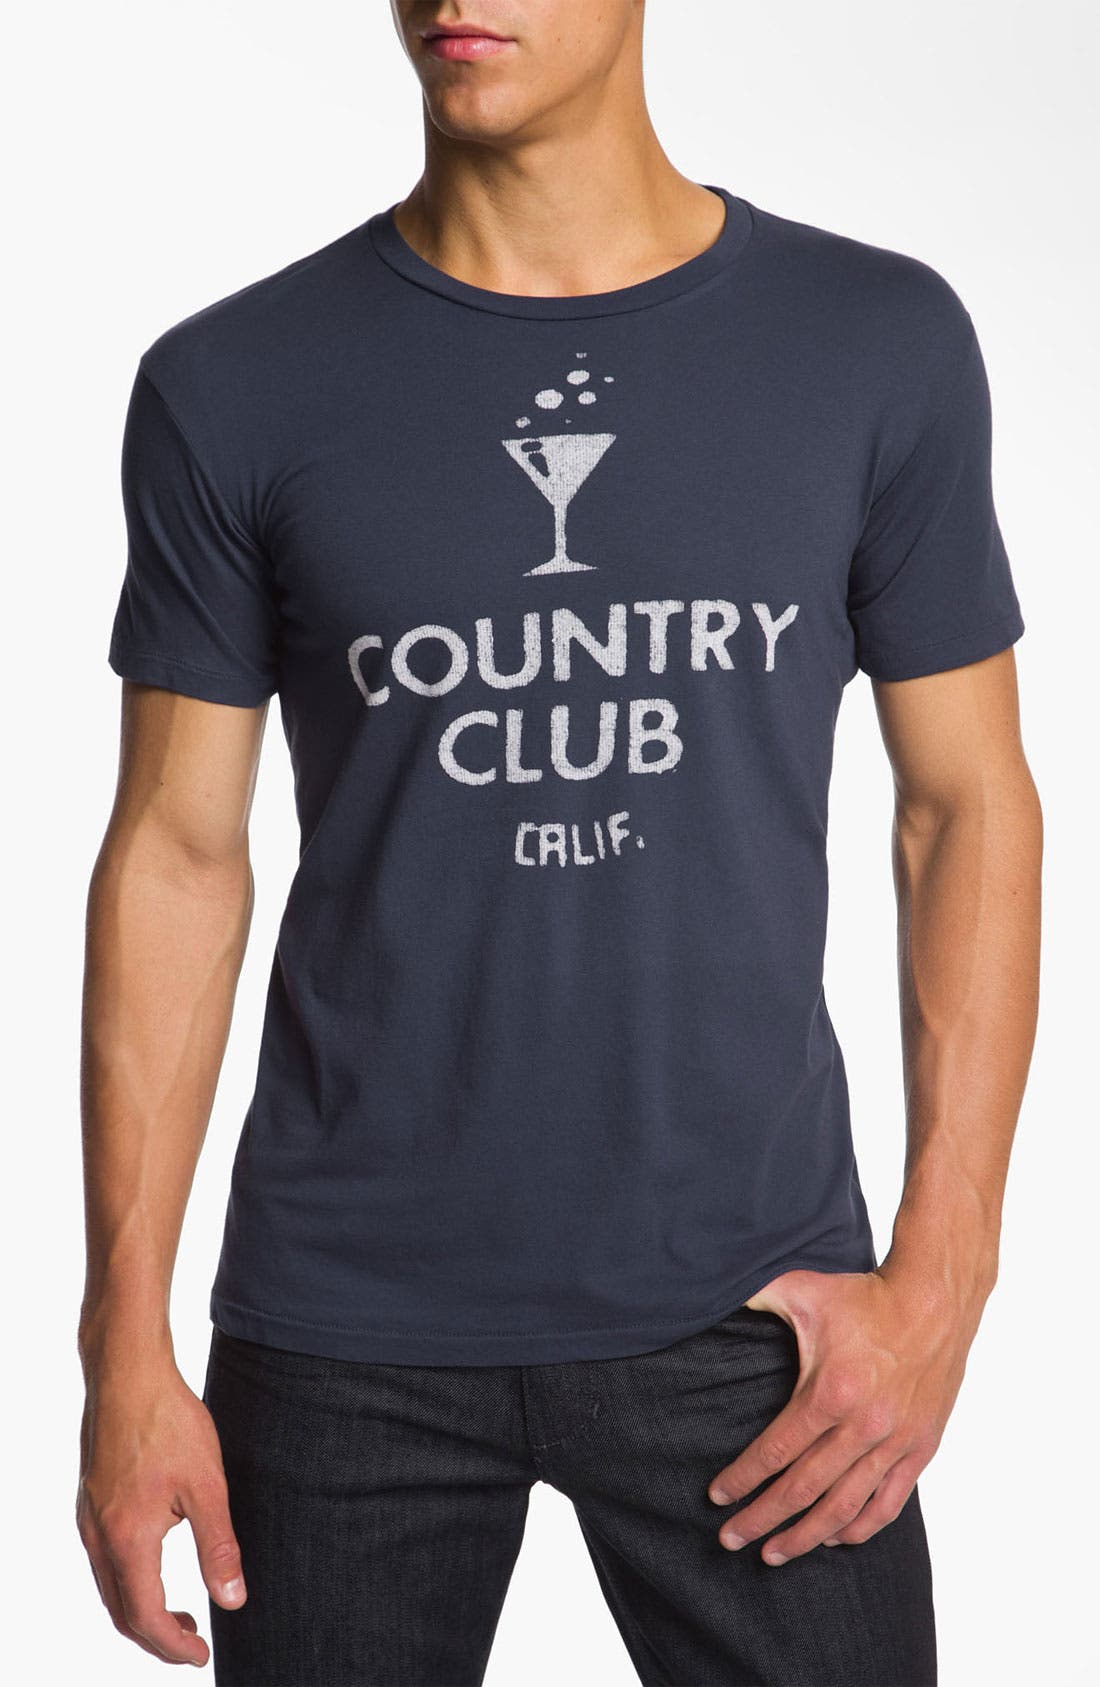 Alternate Image 1 Selected - Sol Angeles 'Country Club' Graphic T-Shirt